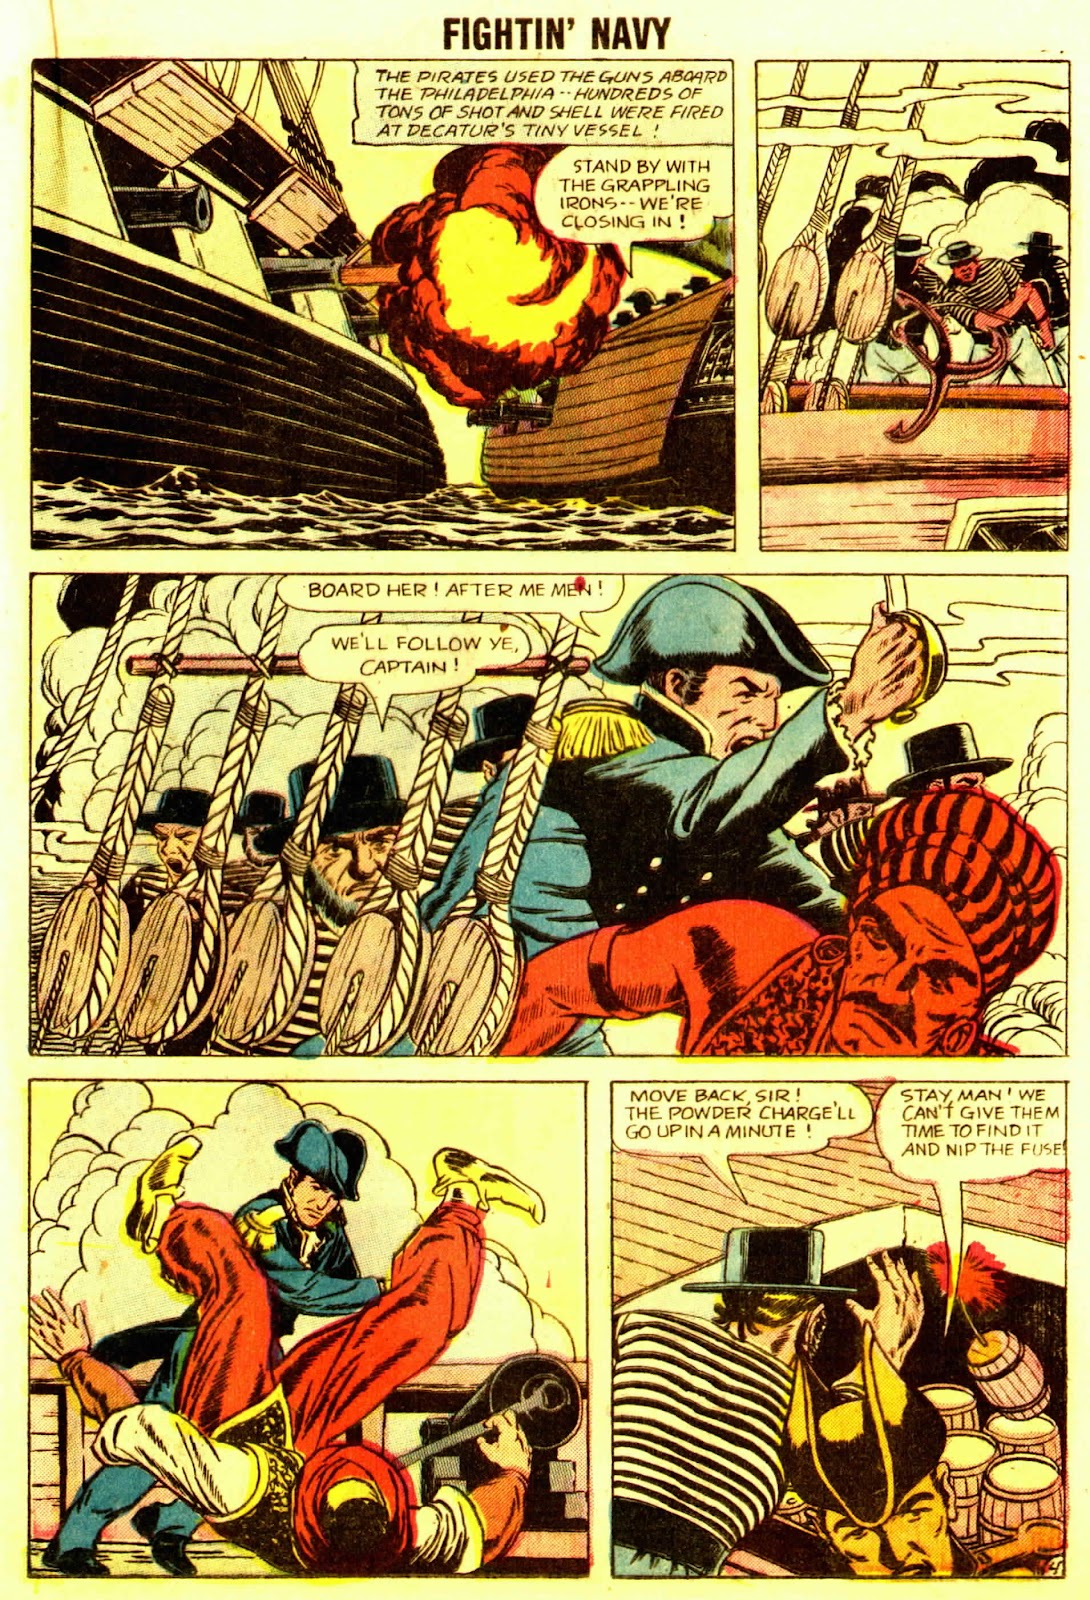 Read online Fightin' Navy comic -  Issue #83 - 31